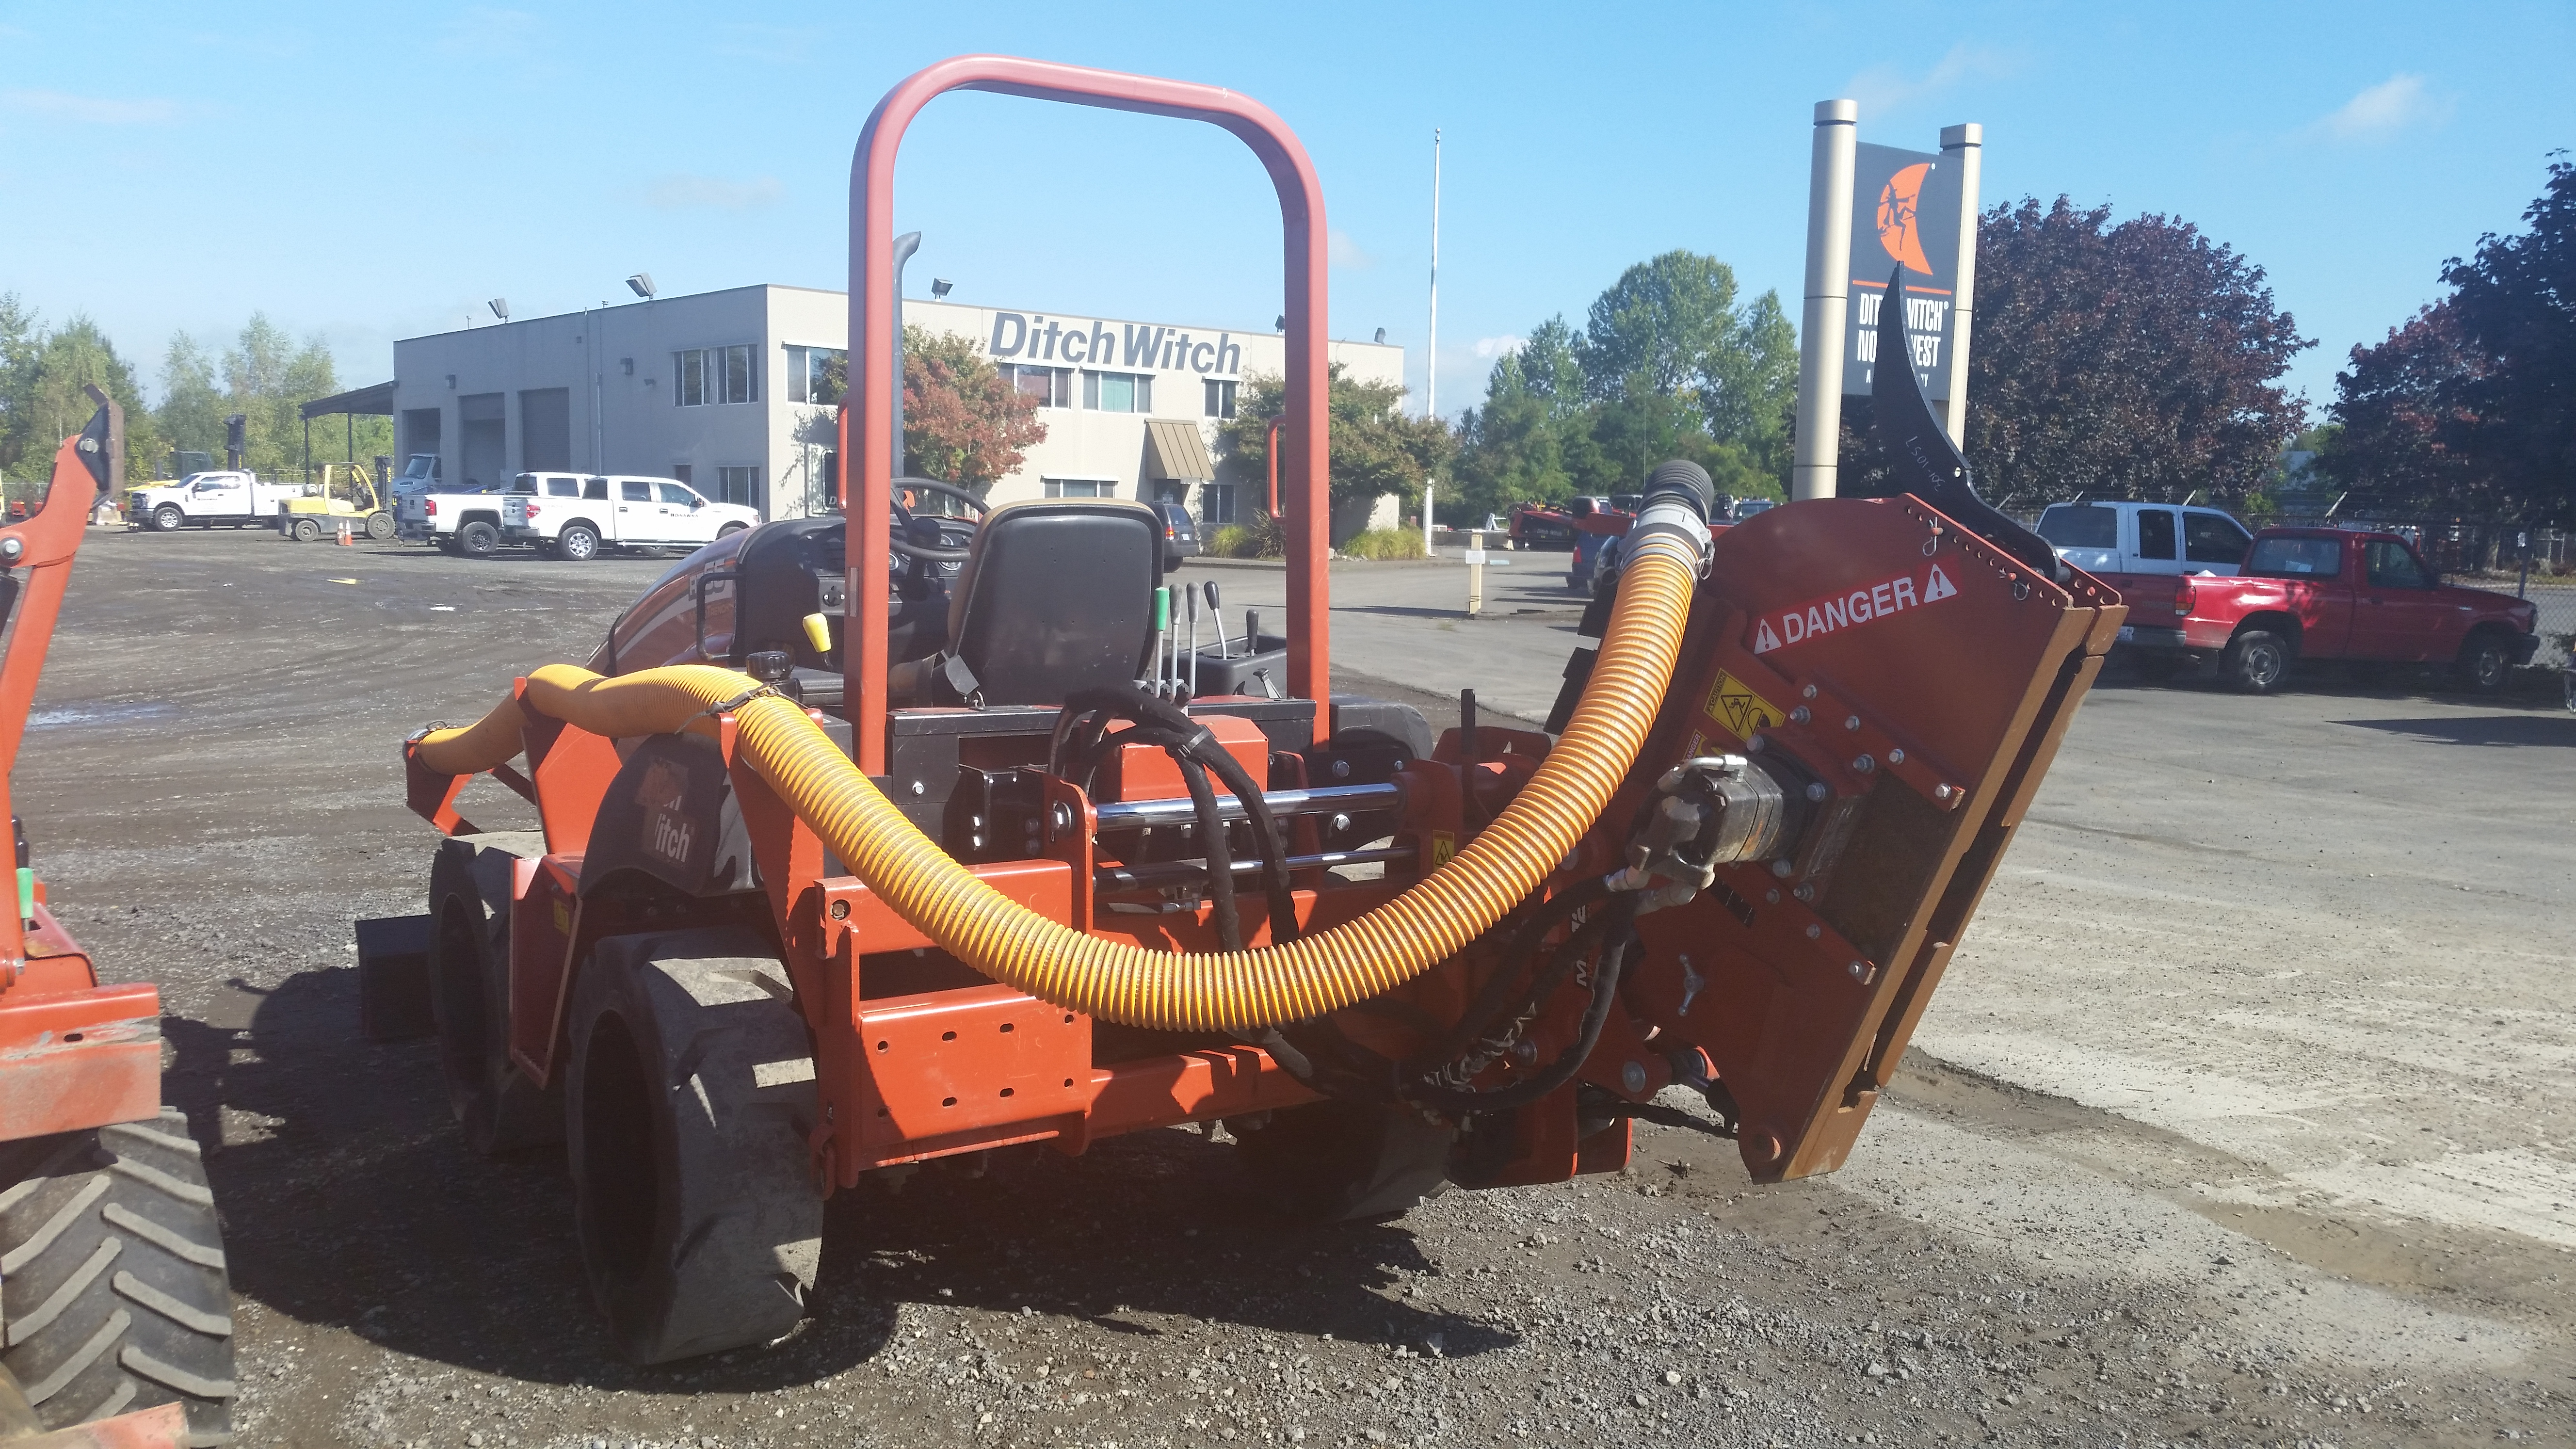 Ditch Witch RT55H